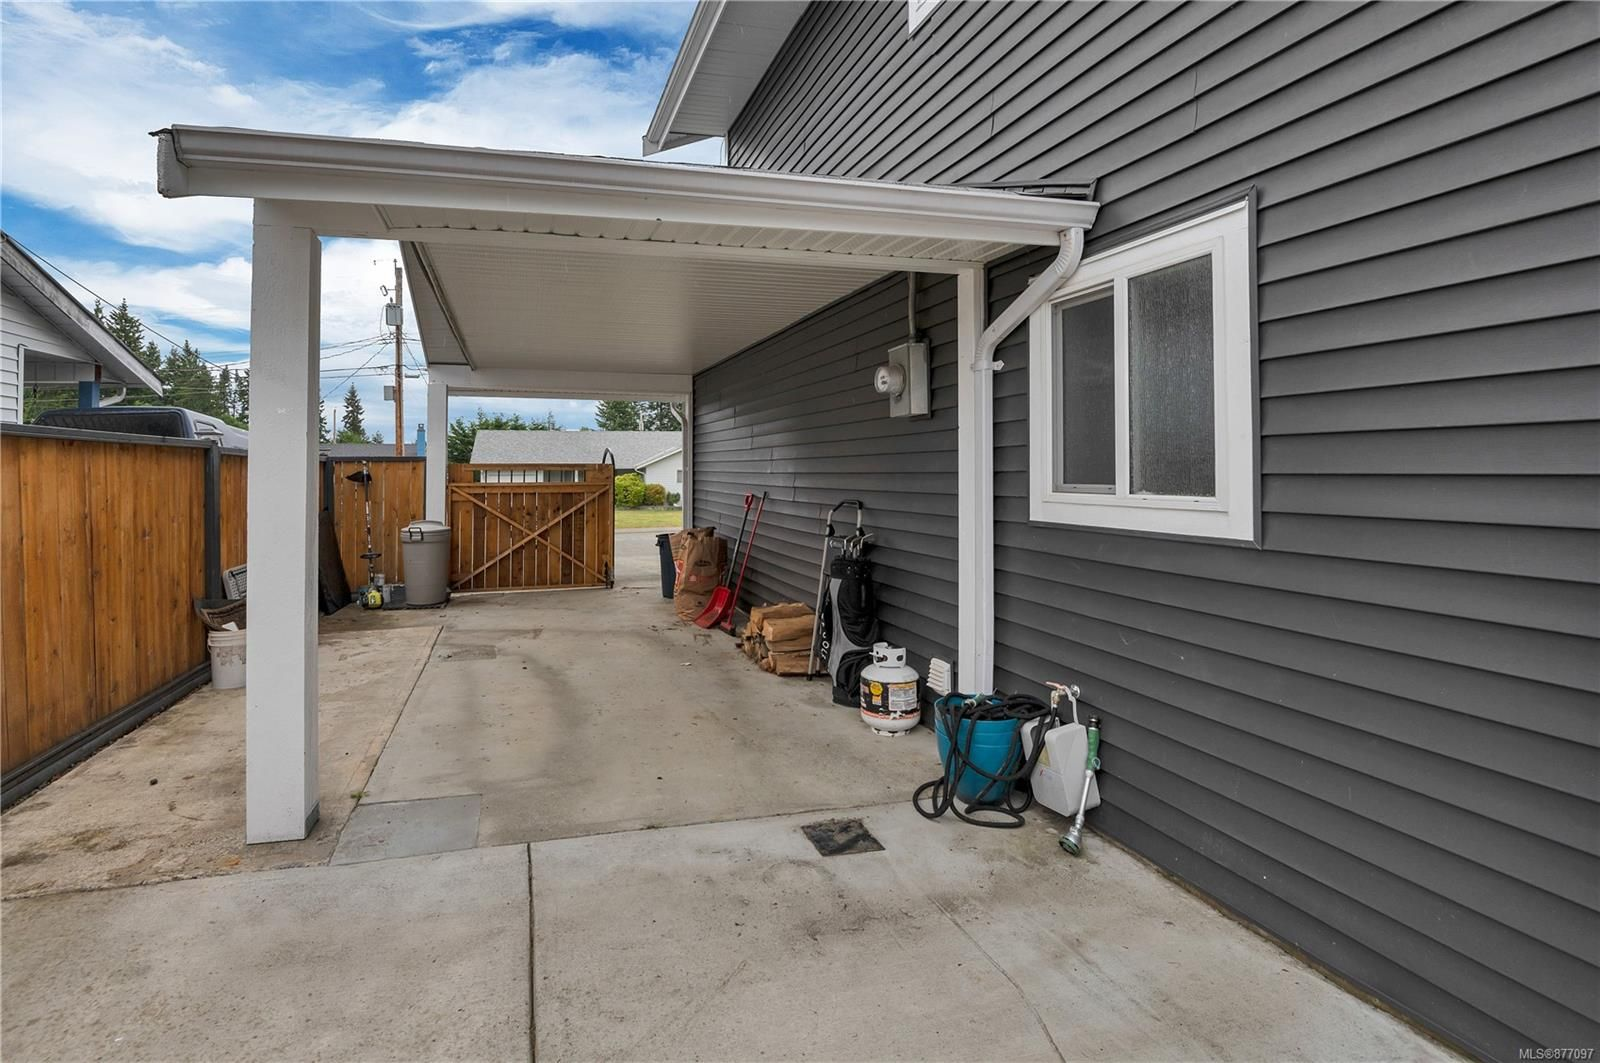 Photo 33: Photos: 2876 Fairmile Rd in : CR Willow Point House for sale (Campbell River)  : MLS®# 877097